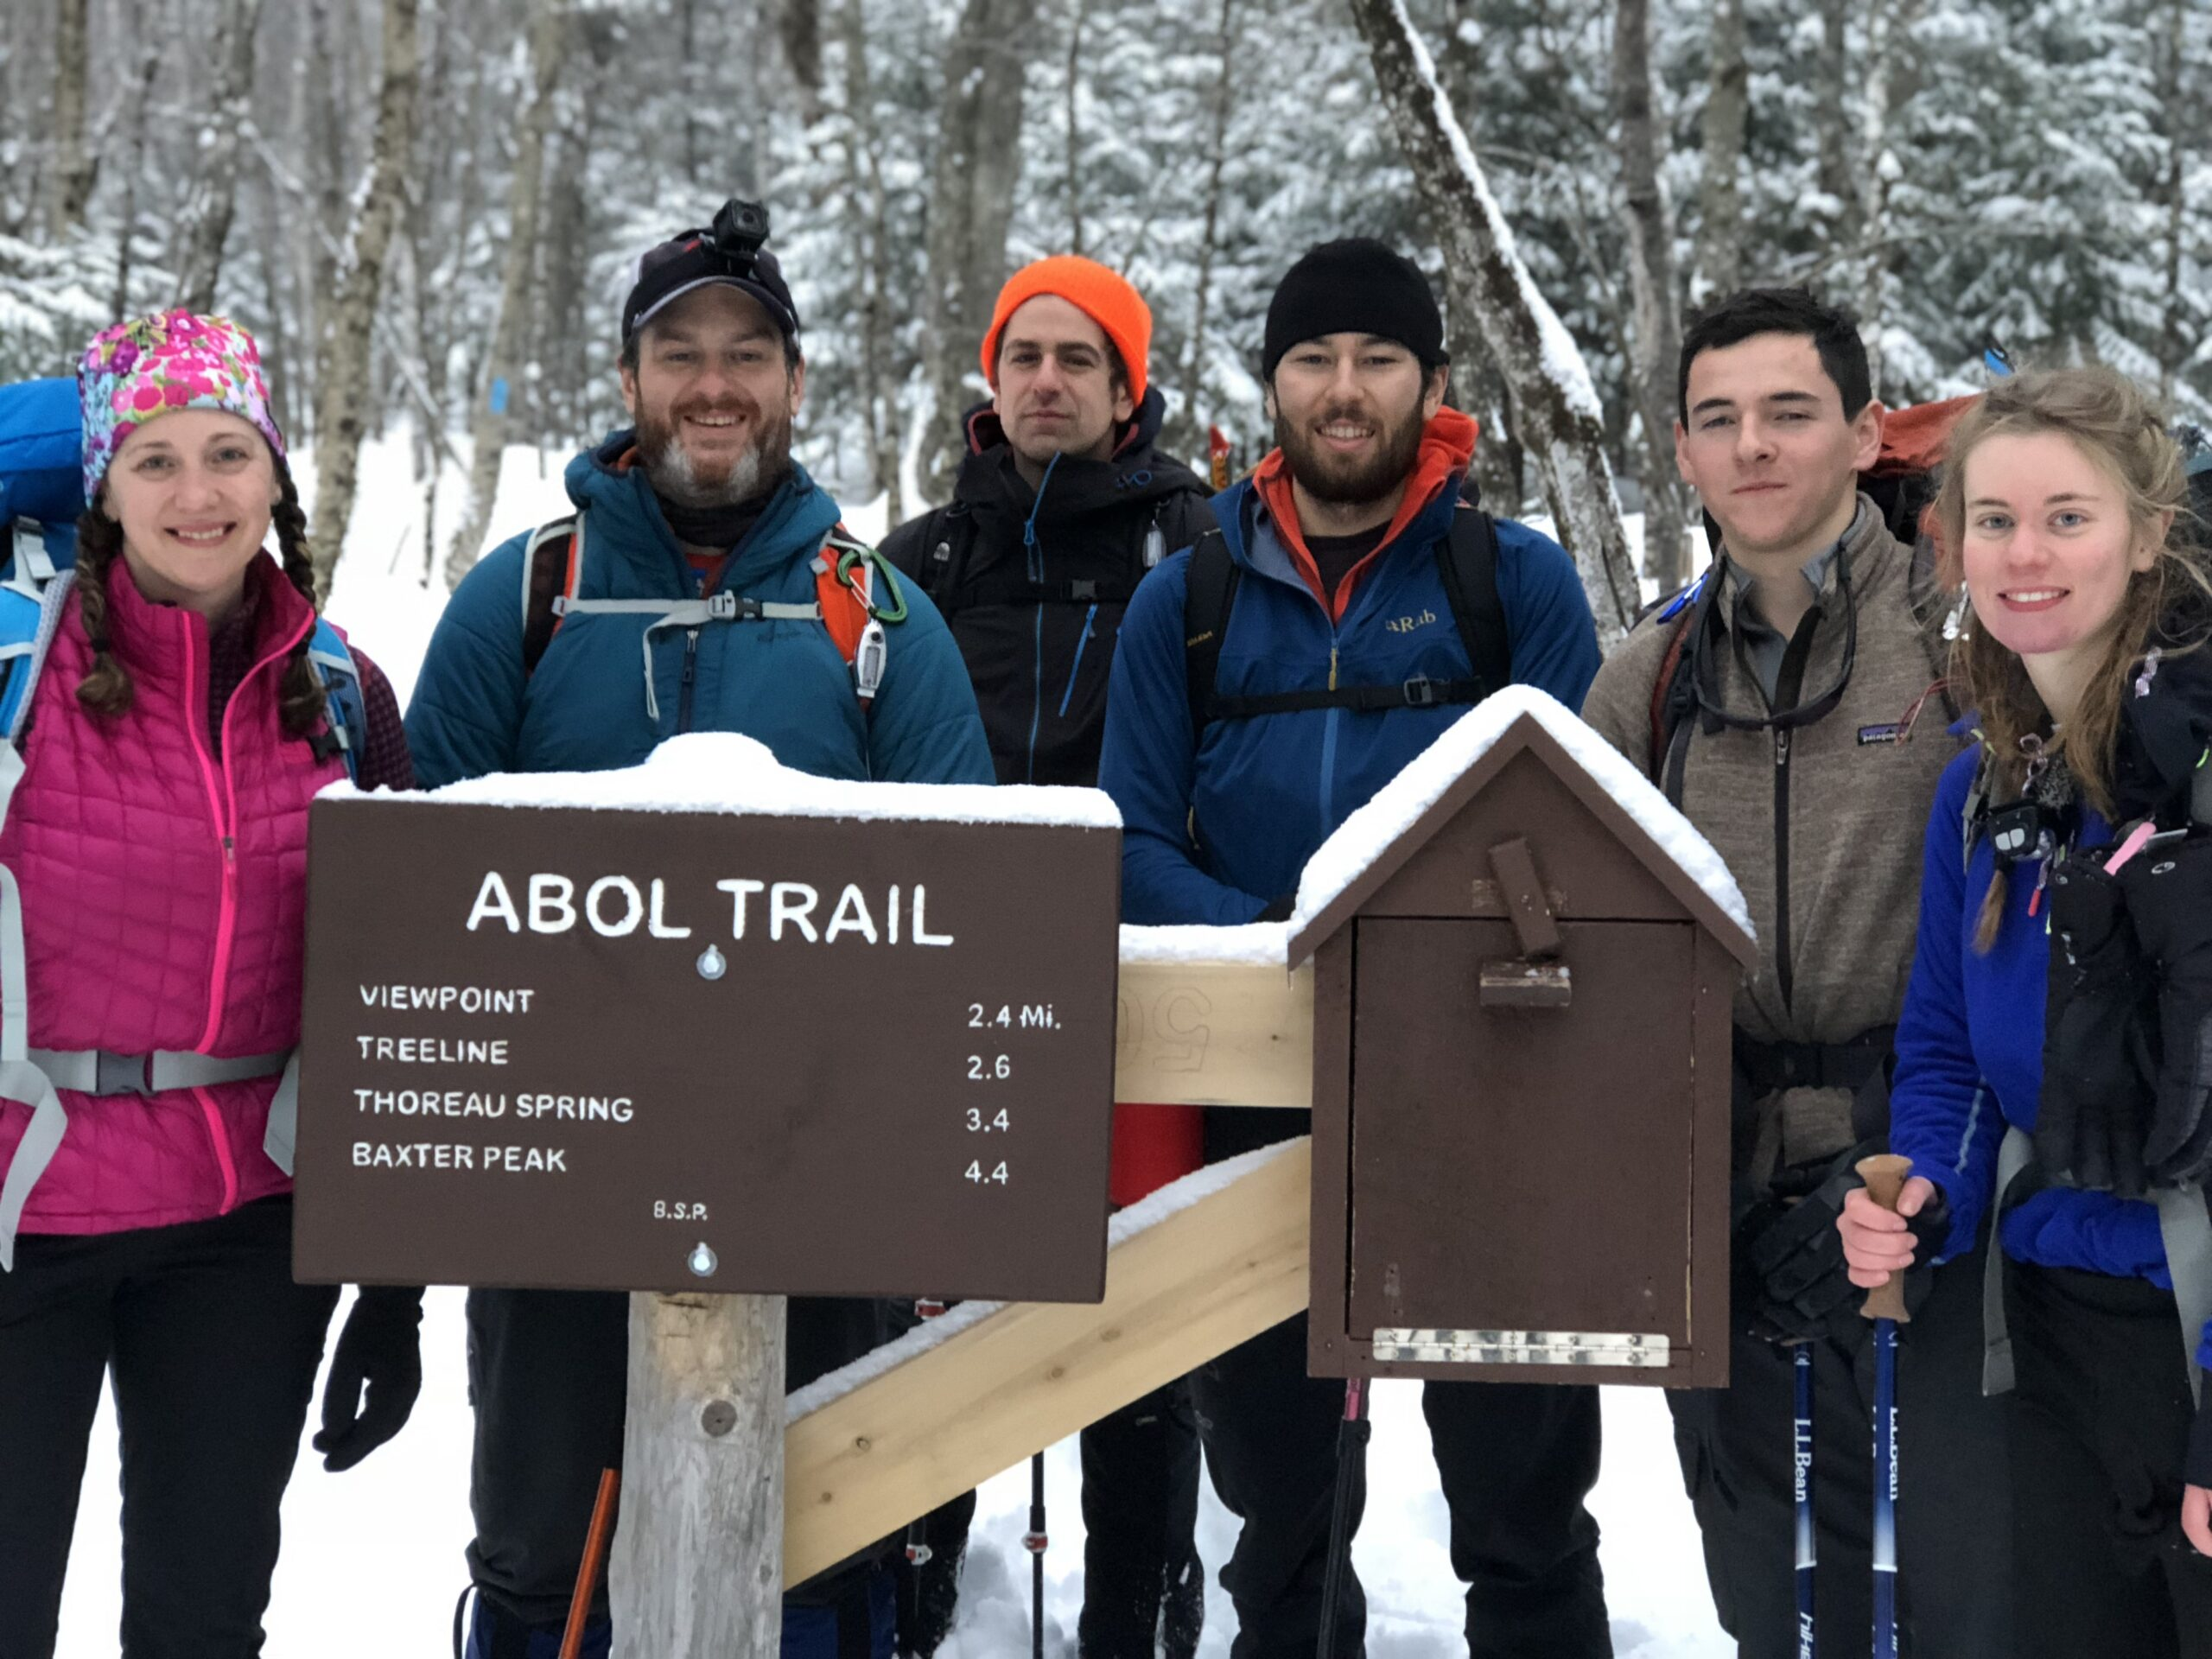 At the trailhead at Abol Campground